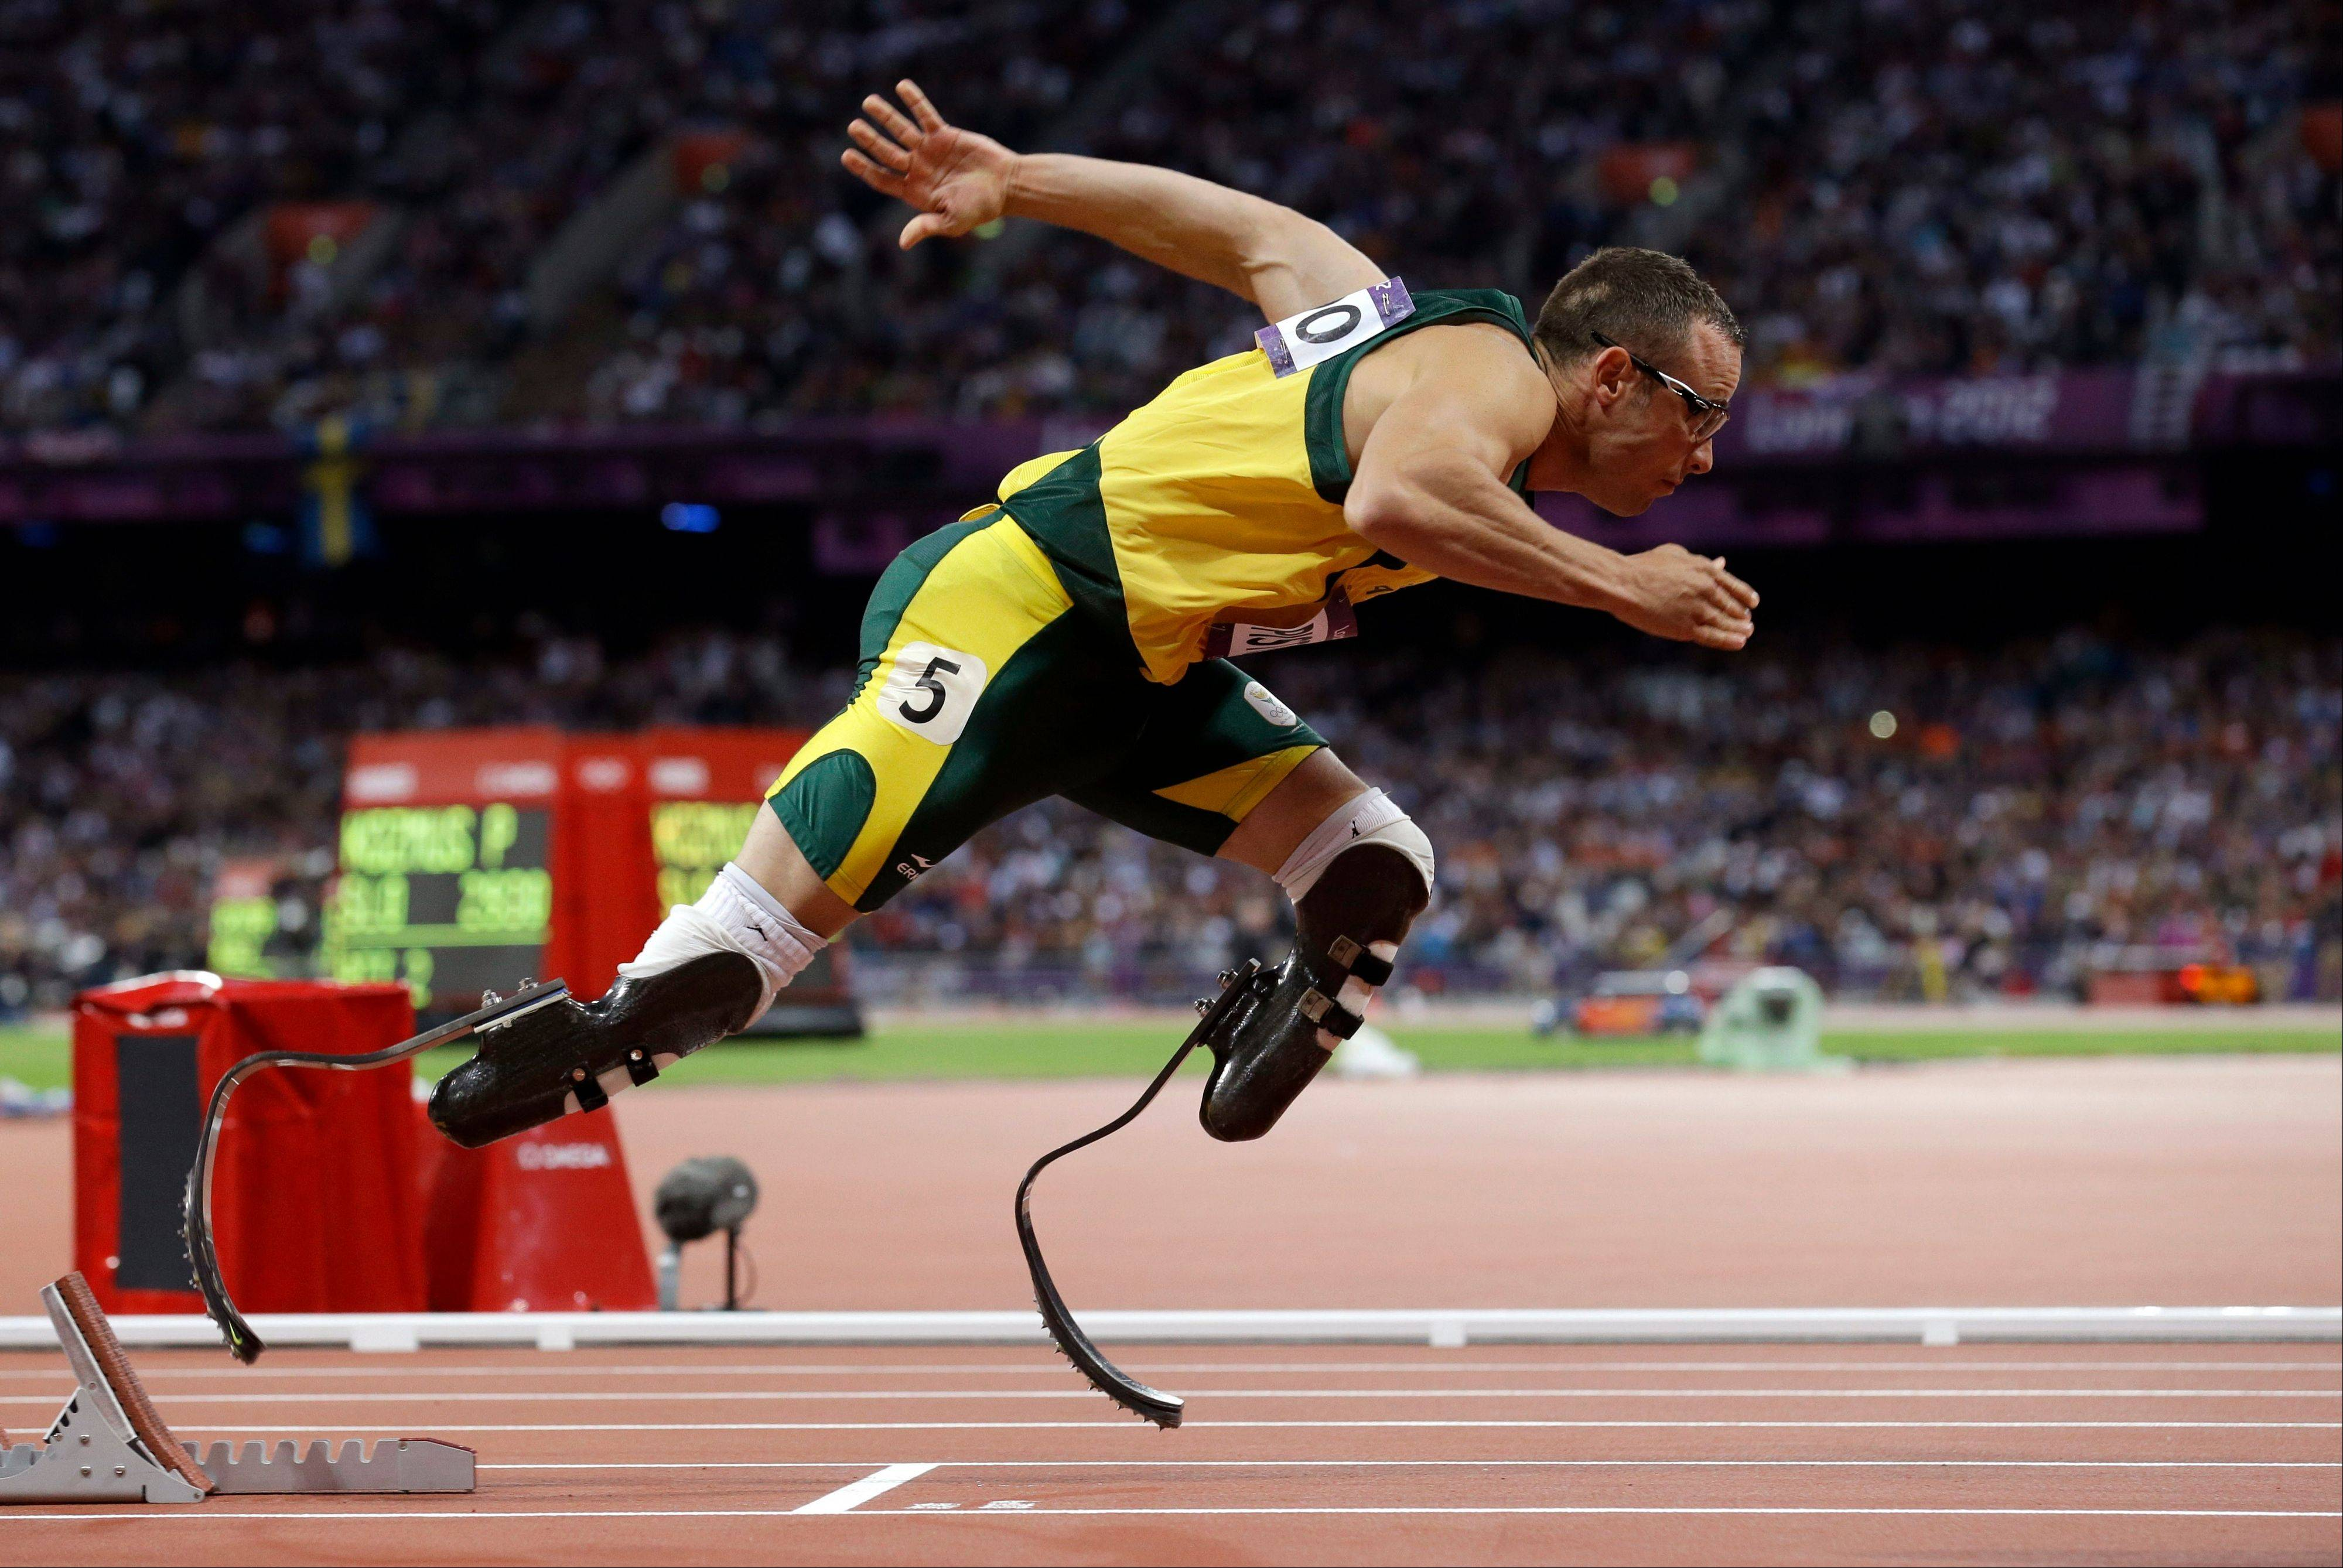 In this Aug. 5, 2012, file photo, South Africa's Oscar Pistorius starts in the men's 400-meter semifinal during the athletics in the Olympic Stadium at the 2012 Summer Olympics in London. Paralympic superstar Oscar Pistorius was charged Thursday with the murder of his girlfriend who was shot inside his home in South Africa, a stunning development in the life of a national hero known as the Blade Runner for his high-tech artificial legs.